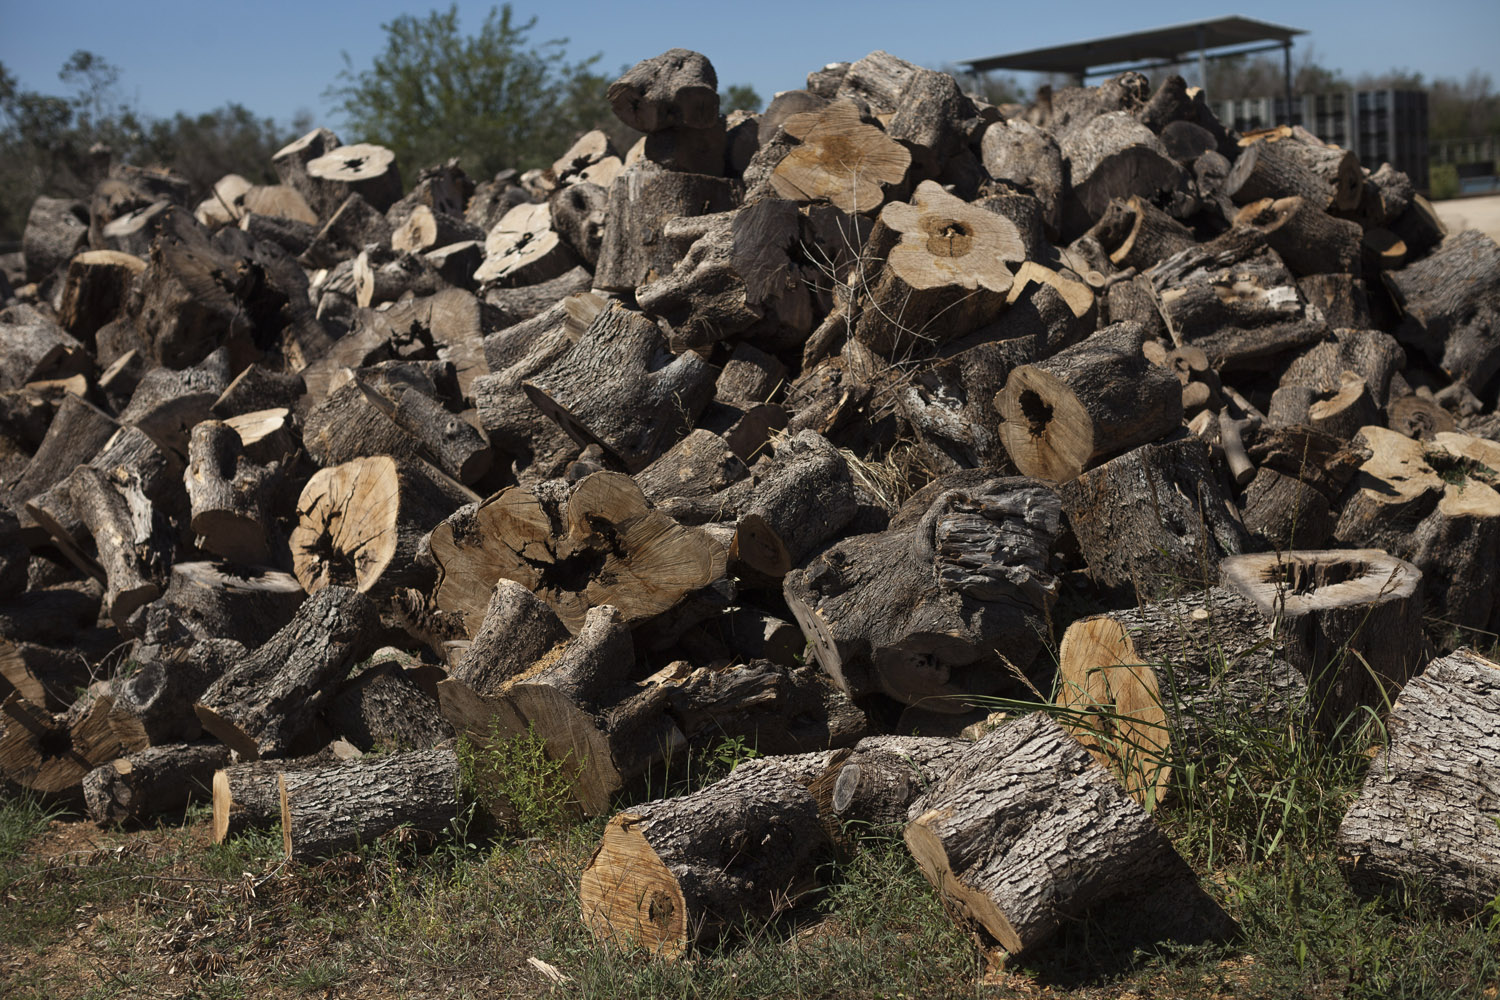 As olive oil production plummeted, a new kind of harvest began appearing in the yards of Salento's countless olive oil mills: firewood. As owners eventually give up and the eradication of the dead trees gathers pace, the price of firewood has plummeted to almost nothing.